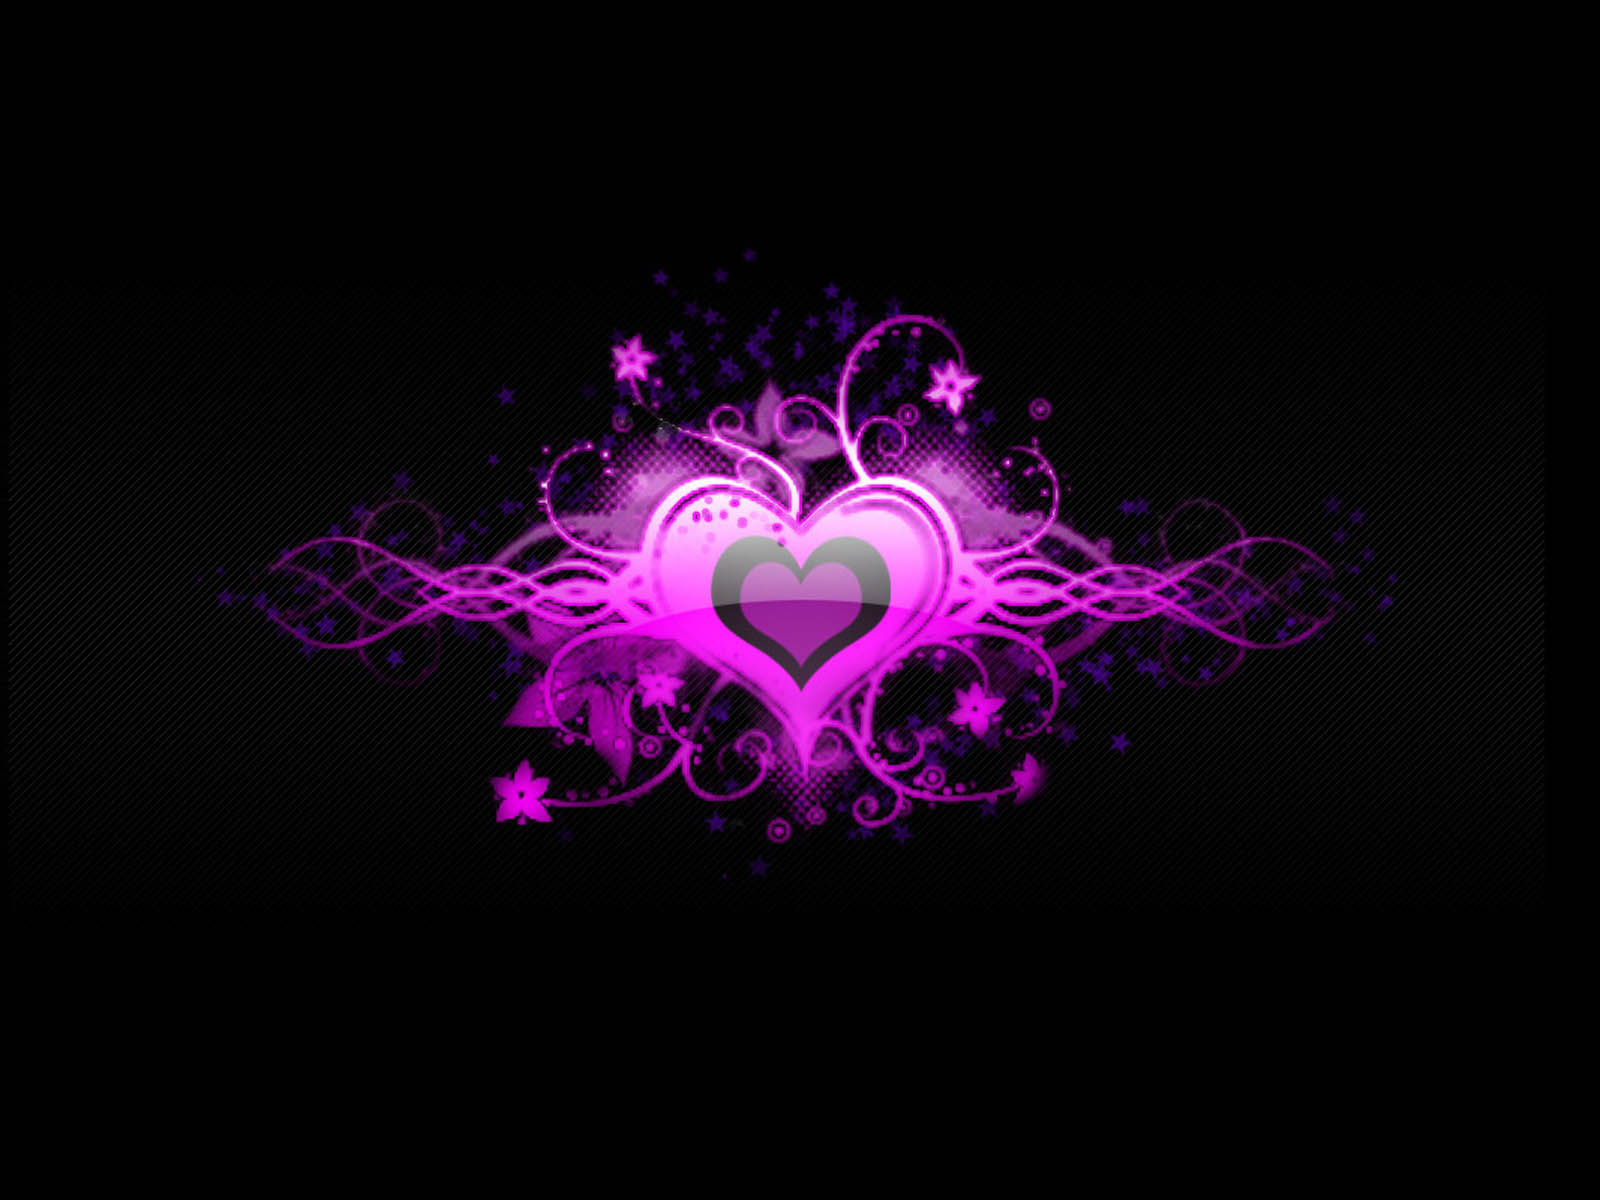 Love Heart Wallpaper Background 3d : wallpapers: Love Heart Wallpapers